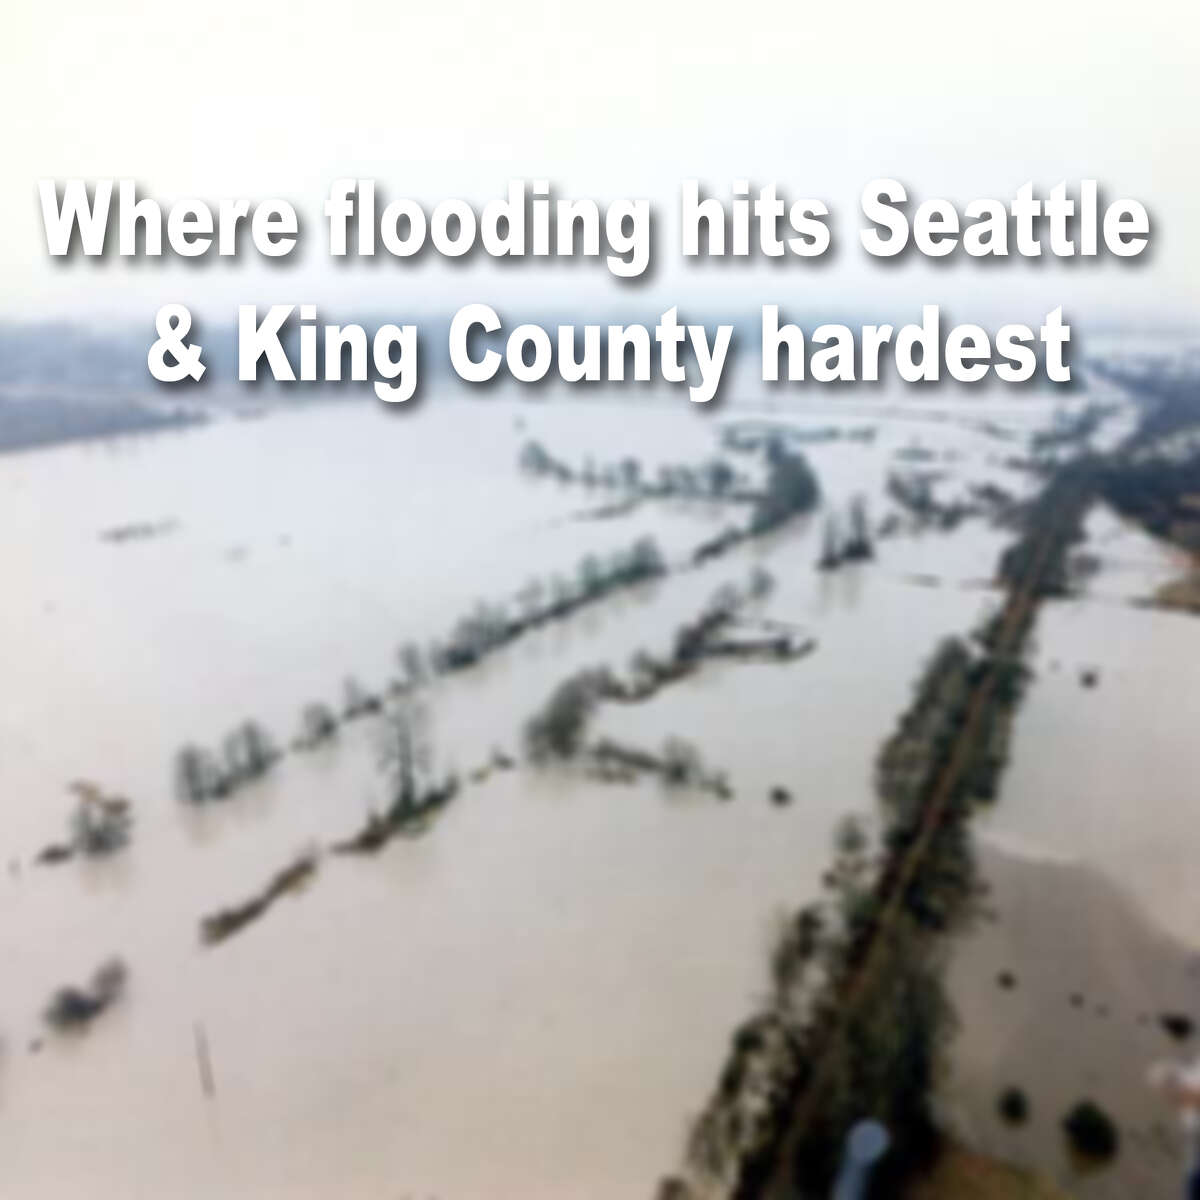 Click through to see places hit hardest during flooding in Seattle and around King County.